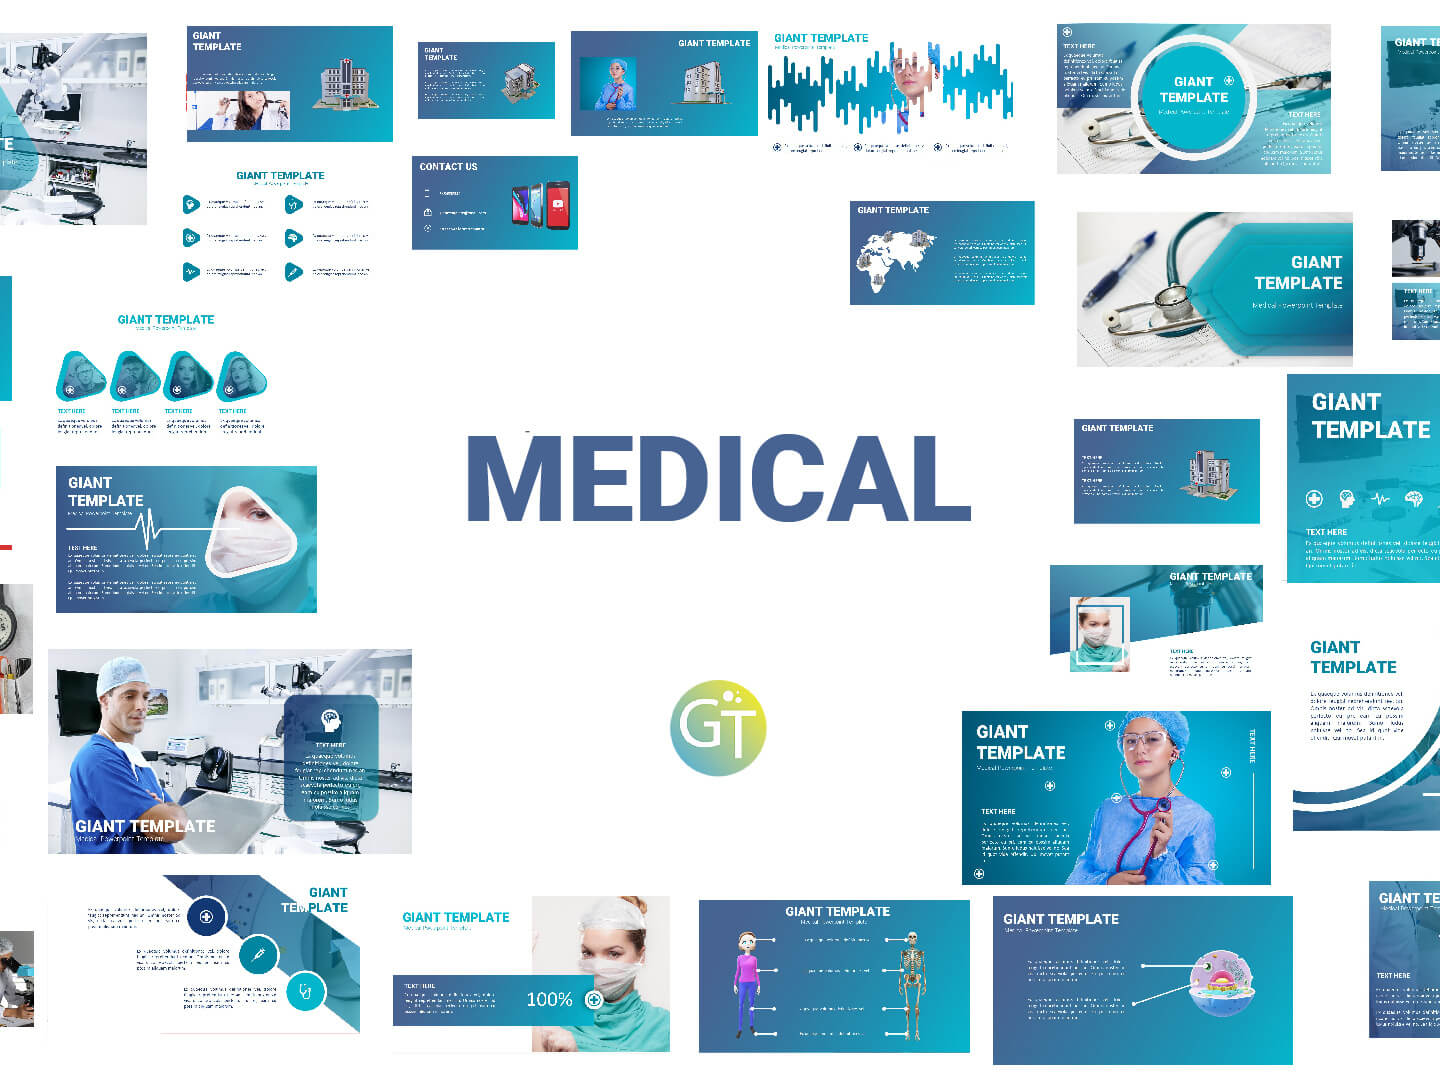 Medical Powerpoint Templates Free Downloadgiant Template Throughout Powerpoint Presentation Animation Templates